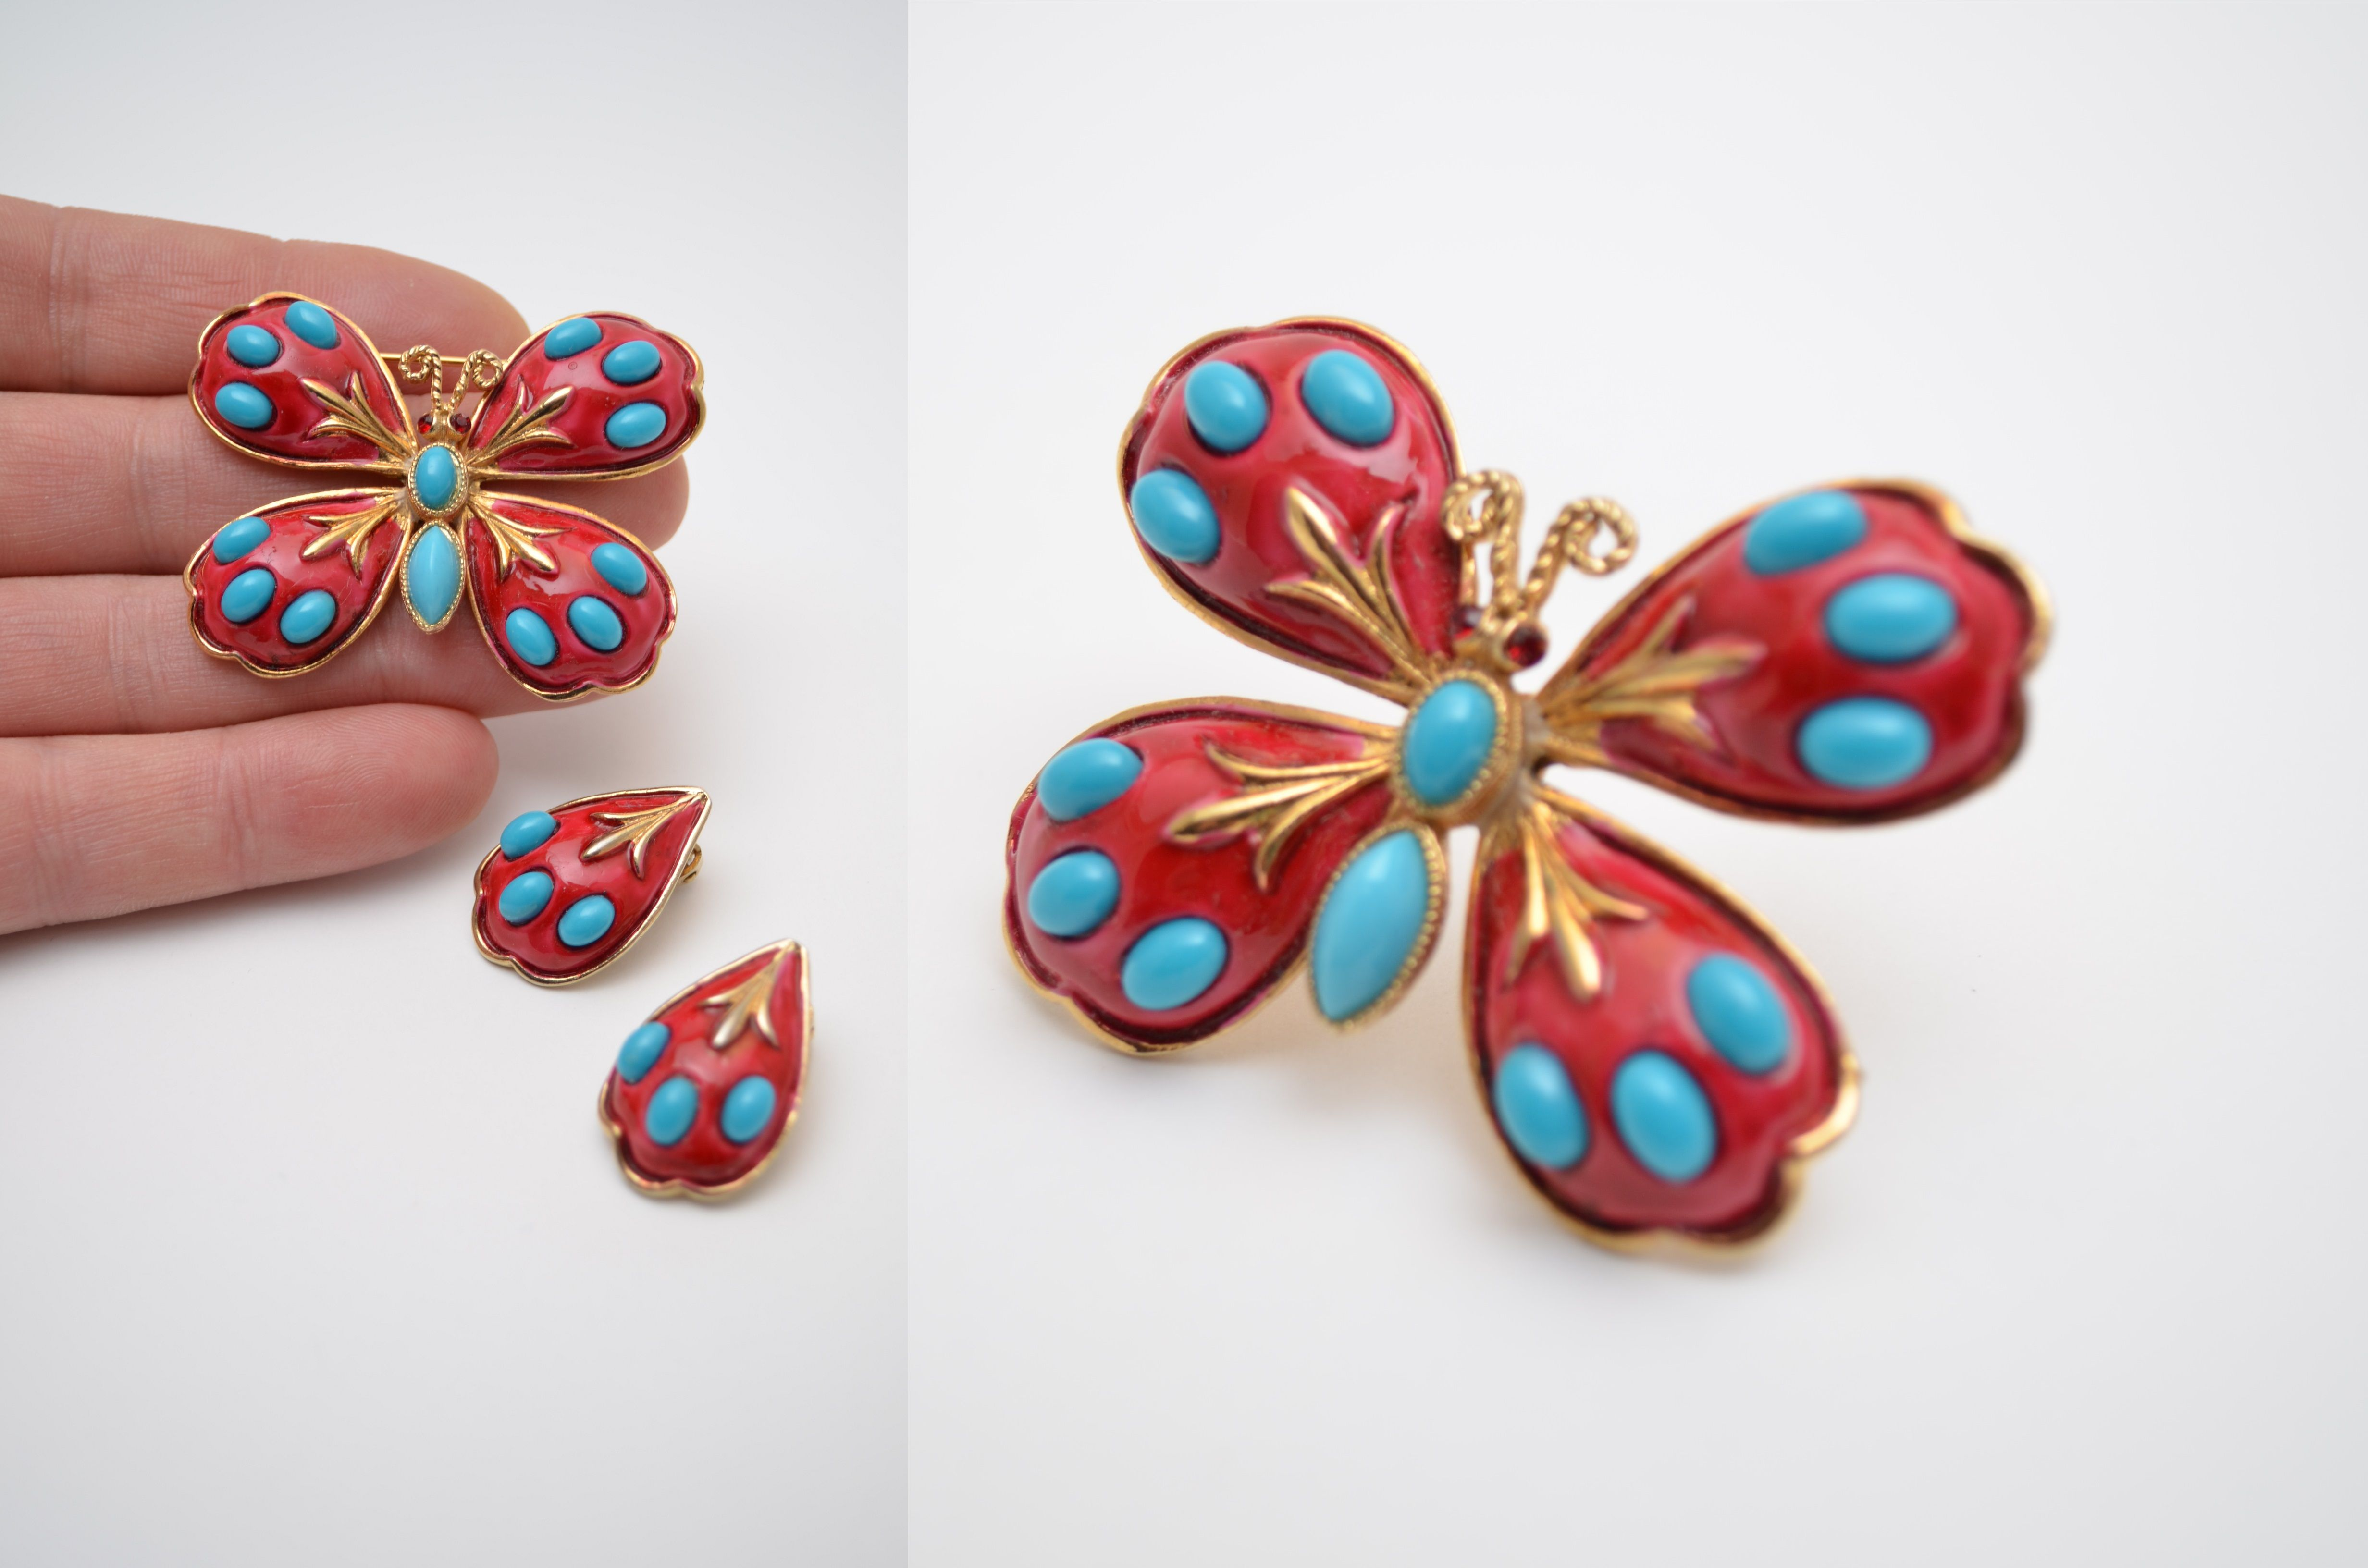 Details about har vintage jewelry set butterfly brooch pin